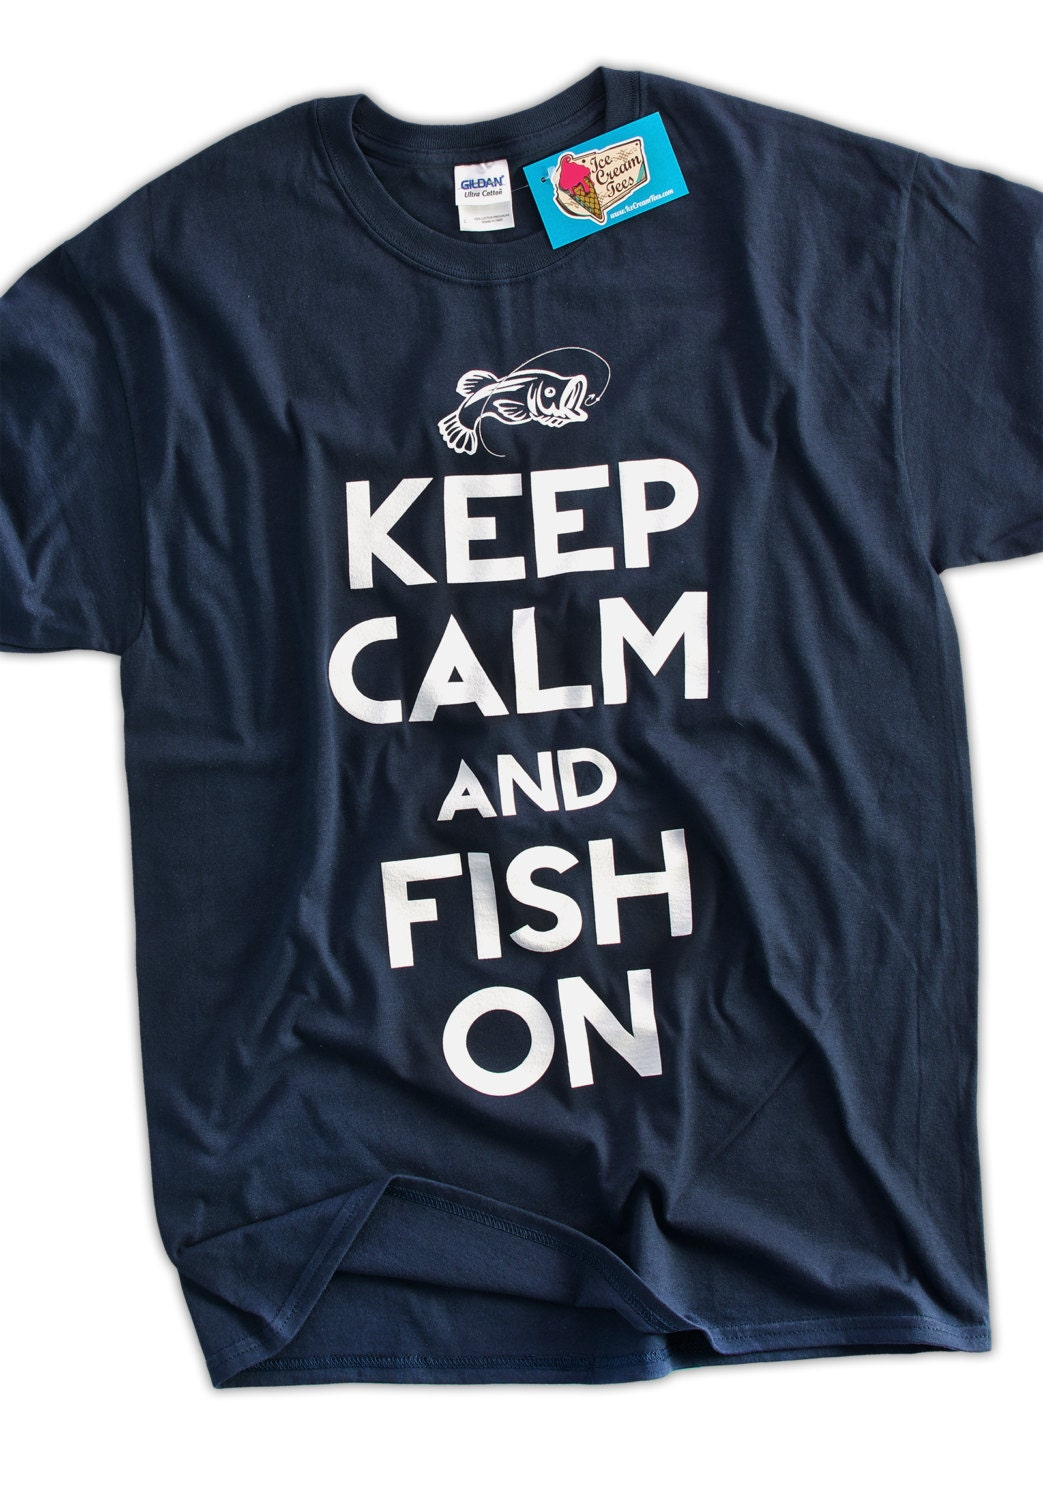 Funny fishing t shirt keep calm and fish on t shirt gifts for for Women s fishing t shirts